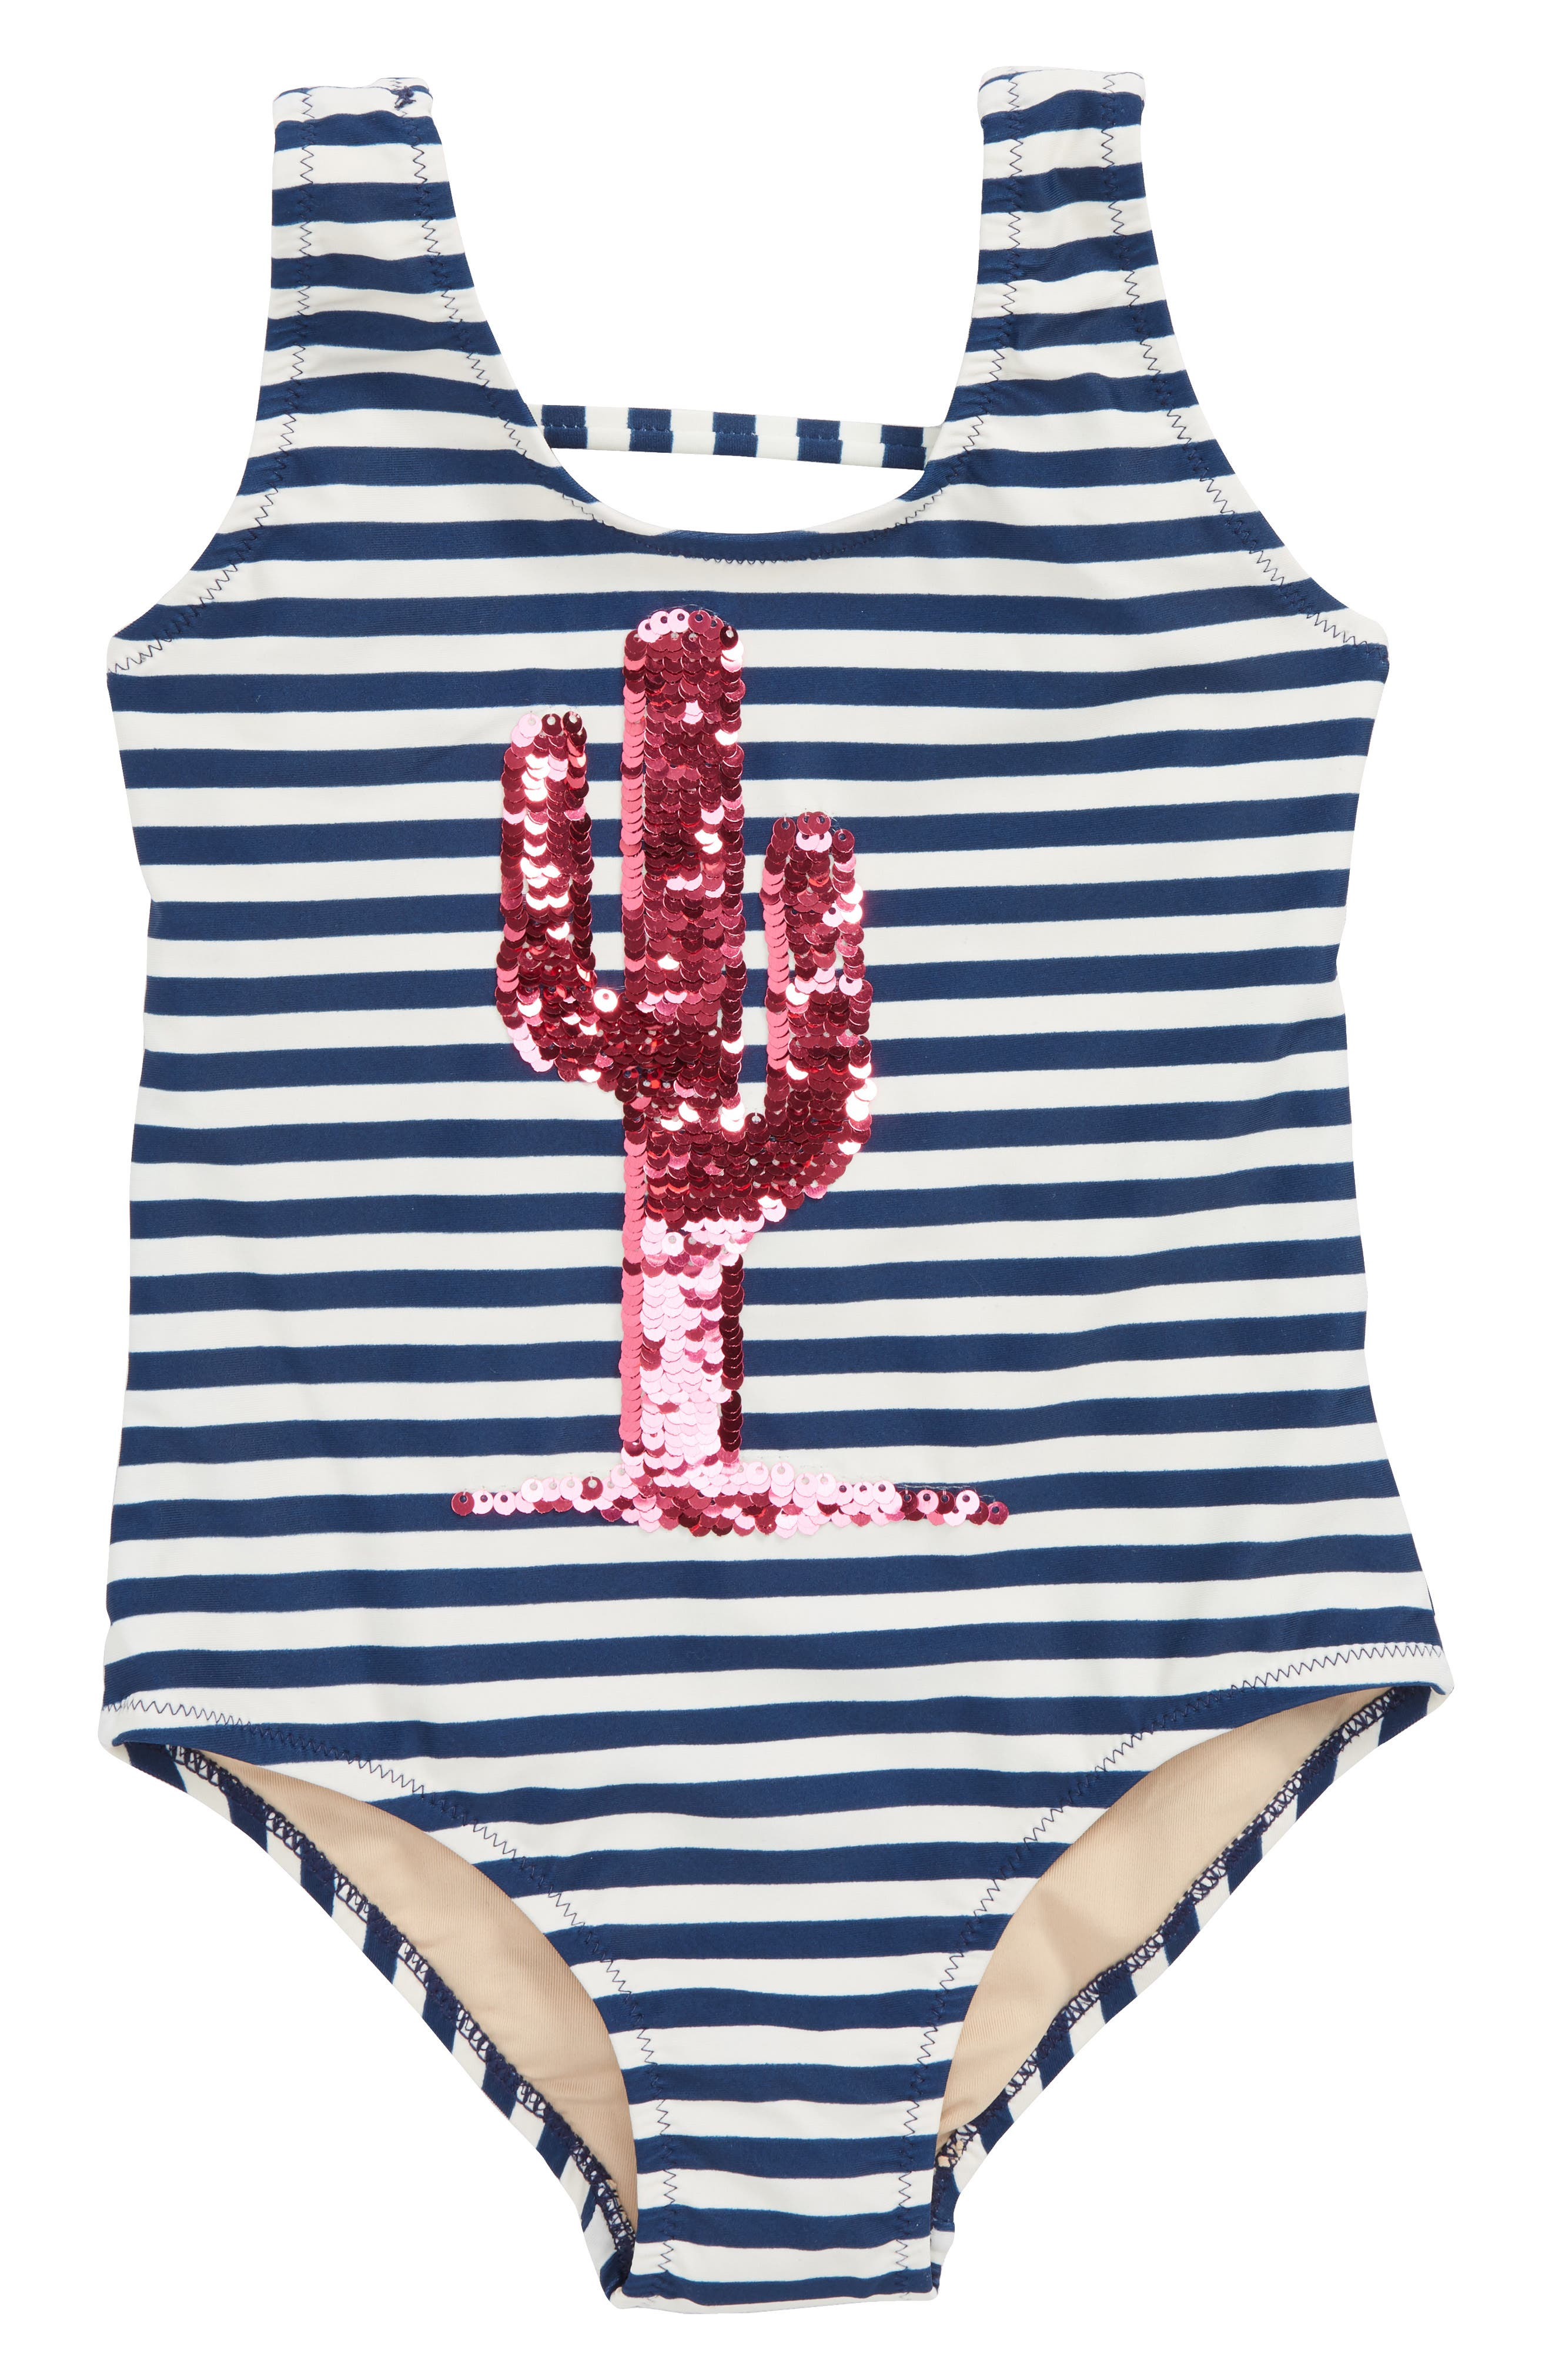 Main Image - Shade Critters Flip Sequin Cactus One-Piece Swimsuit (Toddler Girls & Little Girls)